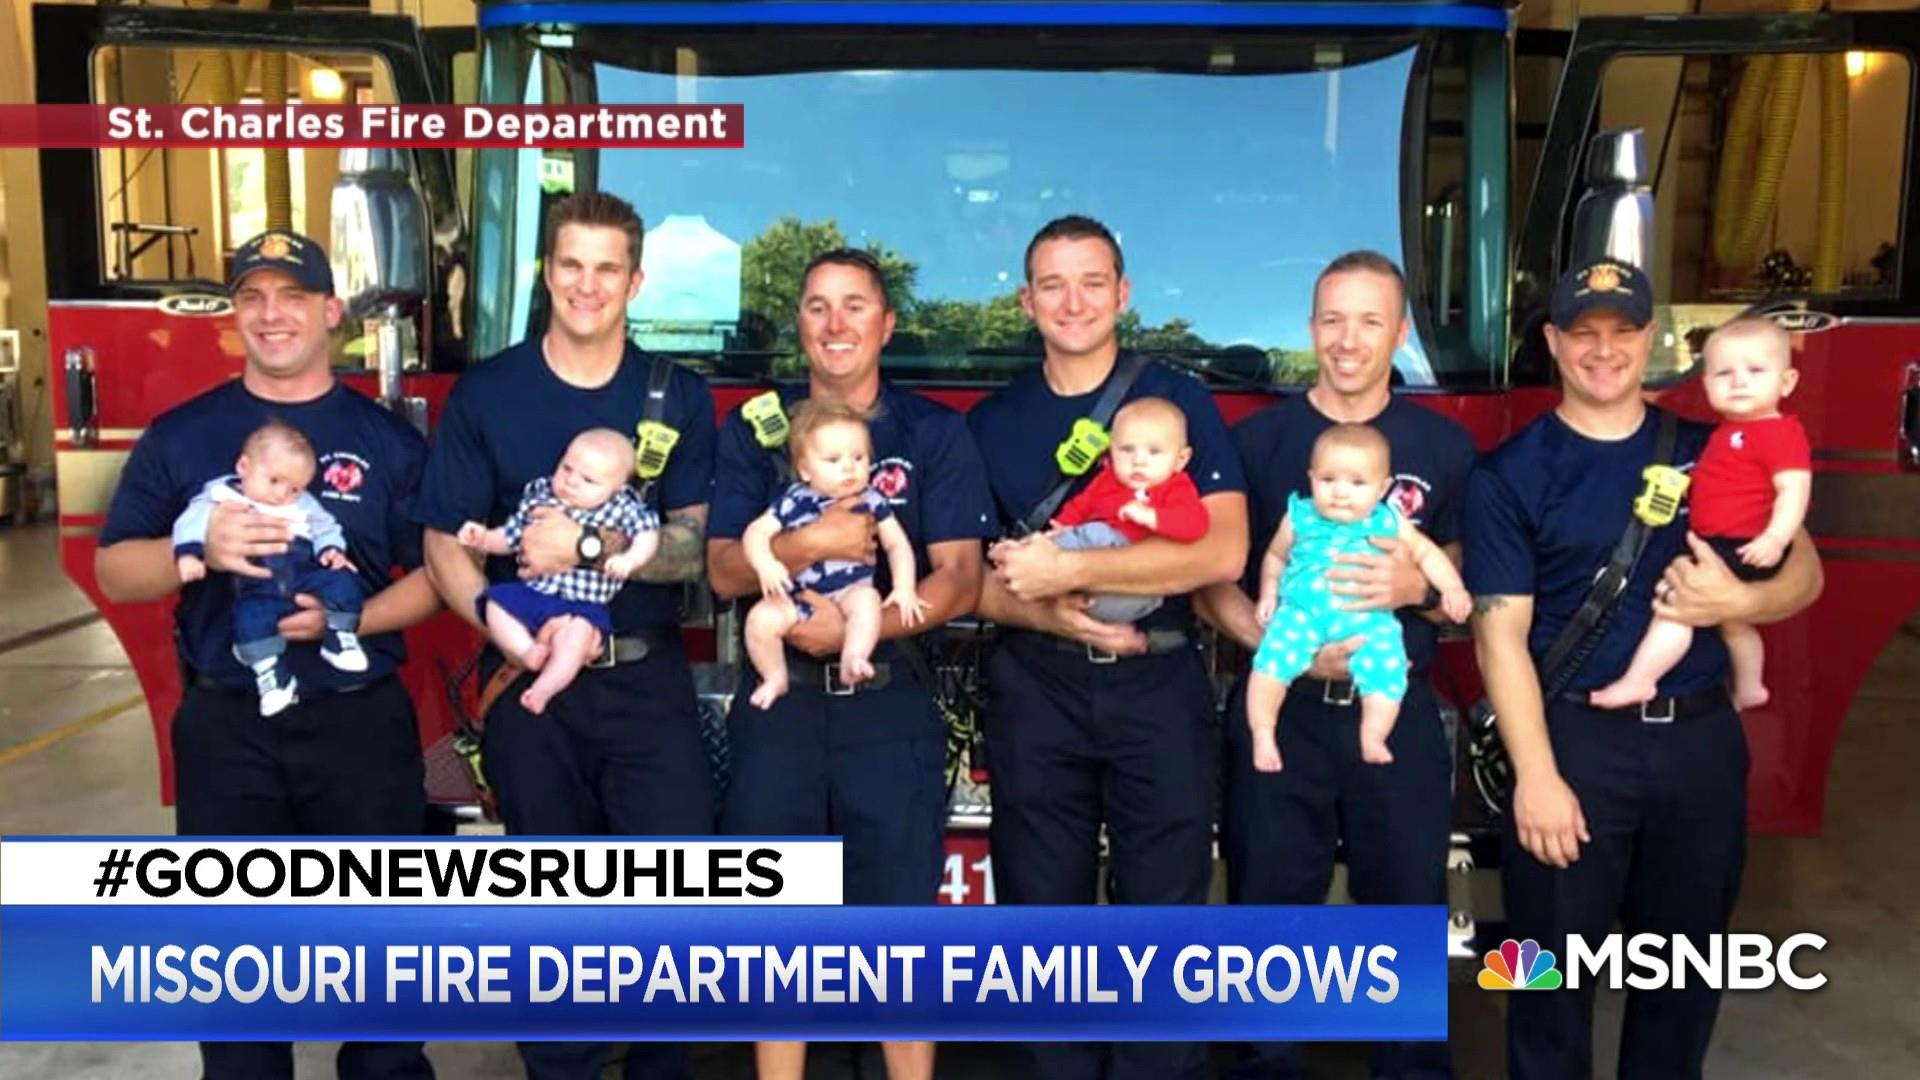 #GoodNewsRUHLES: 6 Firefighters from same shift all welcome babies